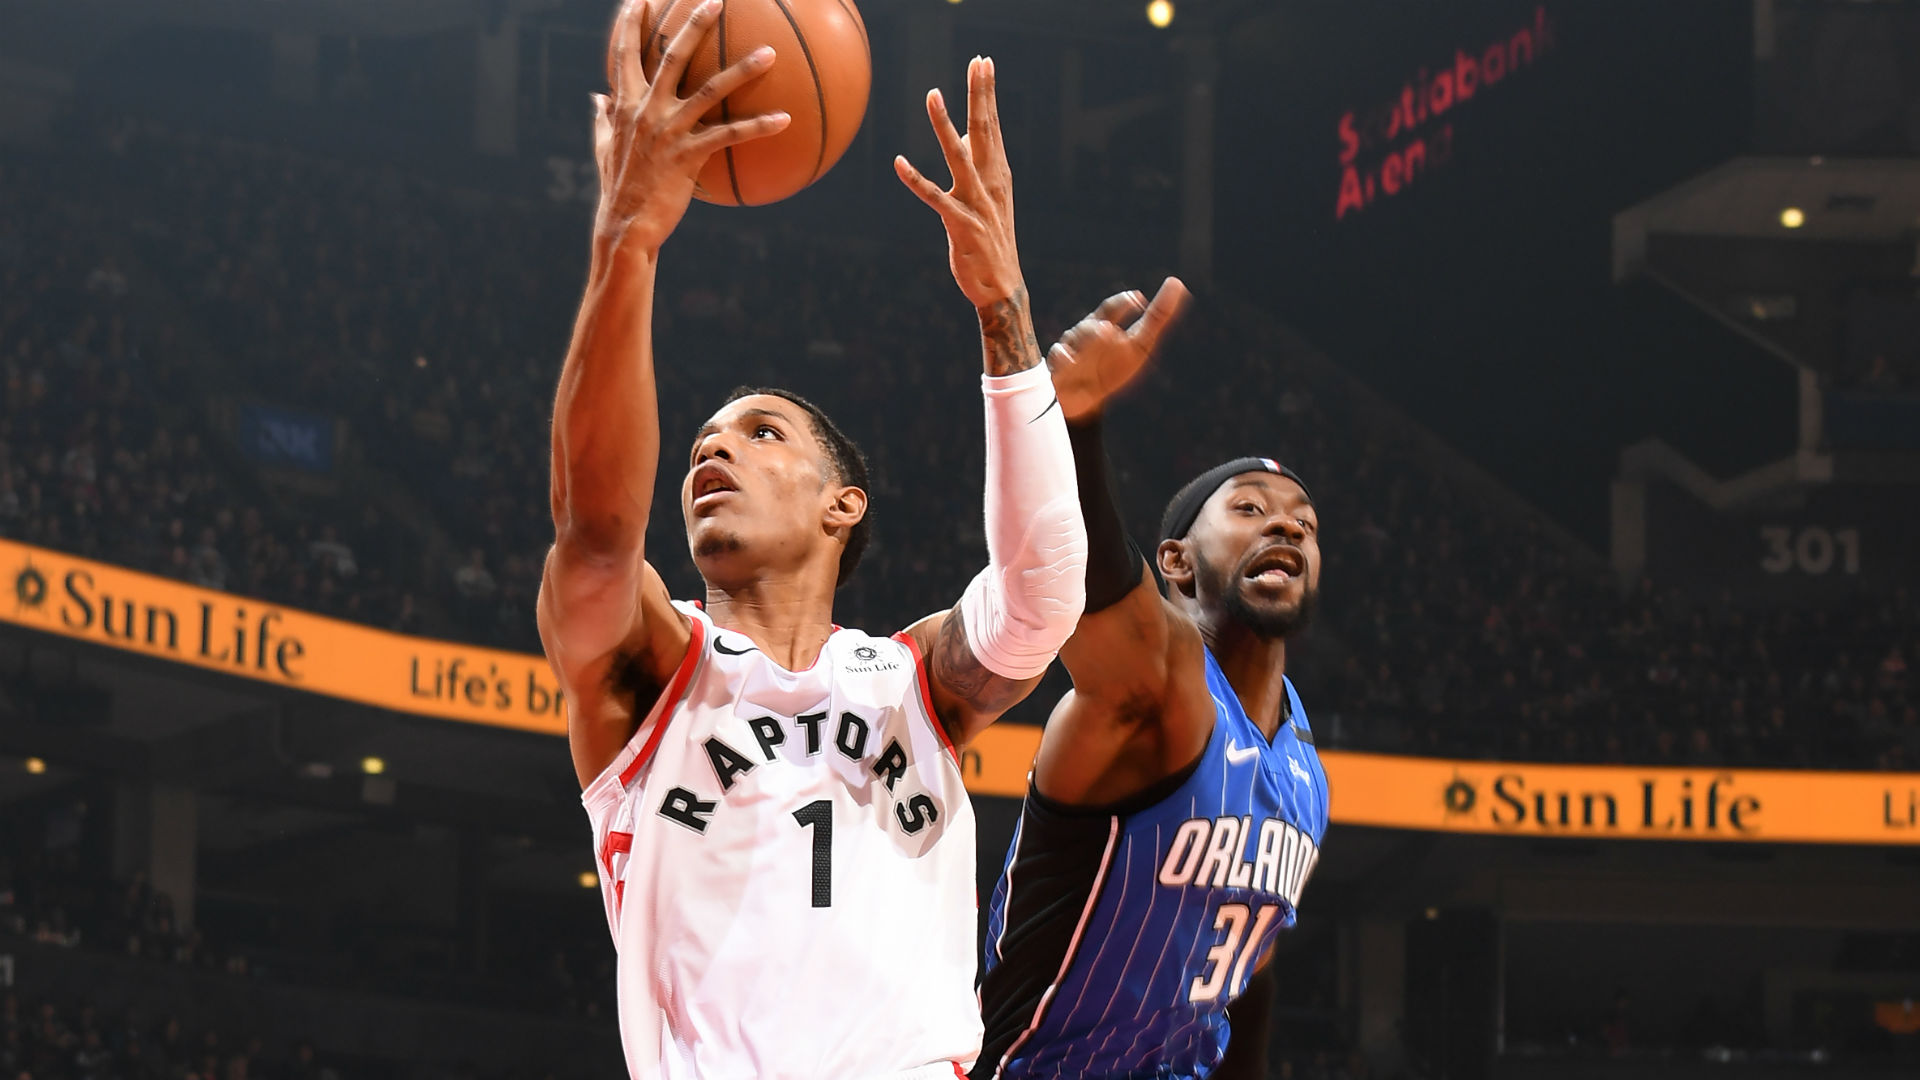 Nba Playoffs 2019 Patrick Mccaw Available For Toronto